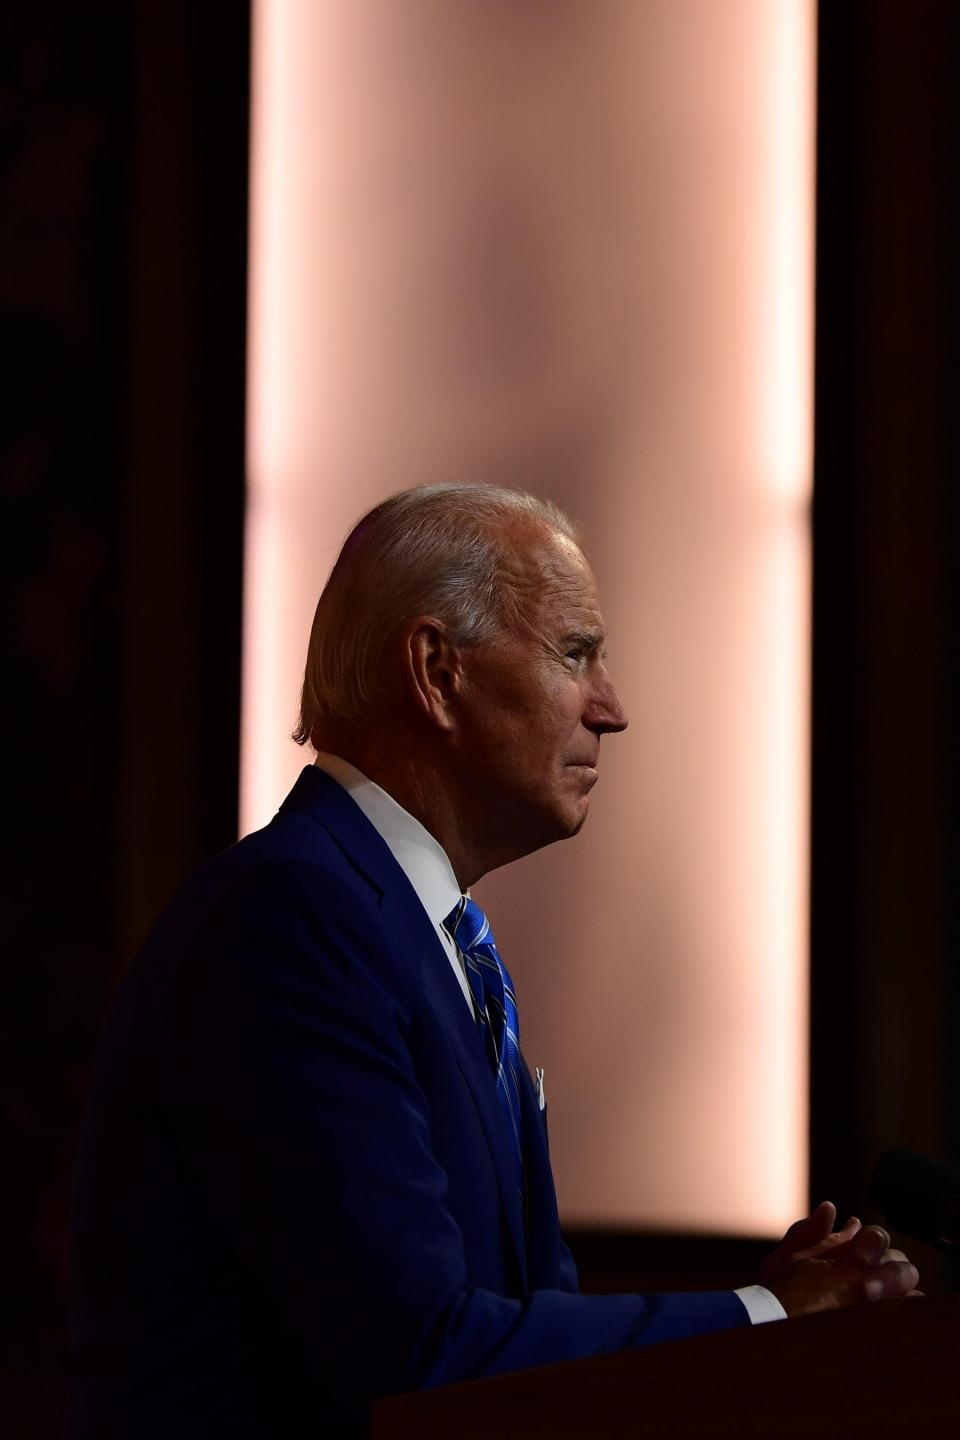 President-elect Joe Biden delivers a Thanksgiving address at the Queen Theatre on November 25, 2020 in Wilmington, Delaware. Photo: Getty Images/AFP